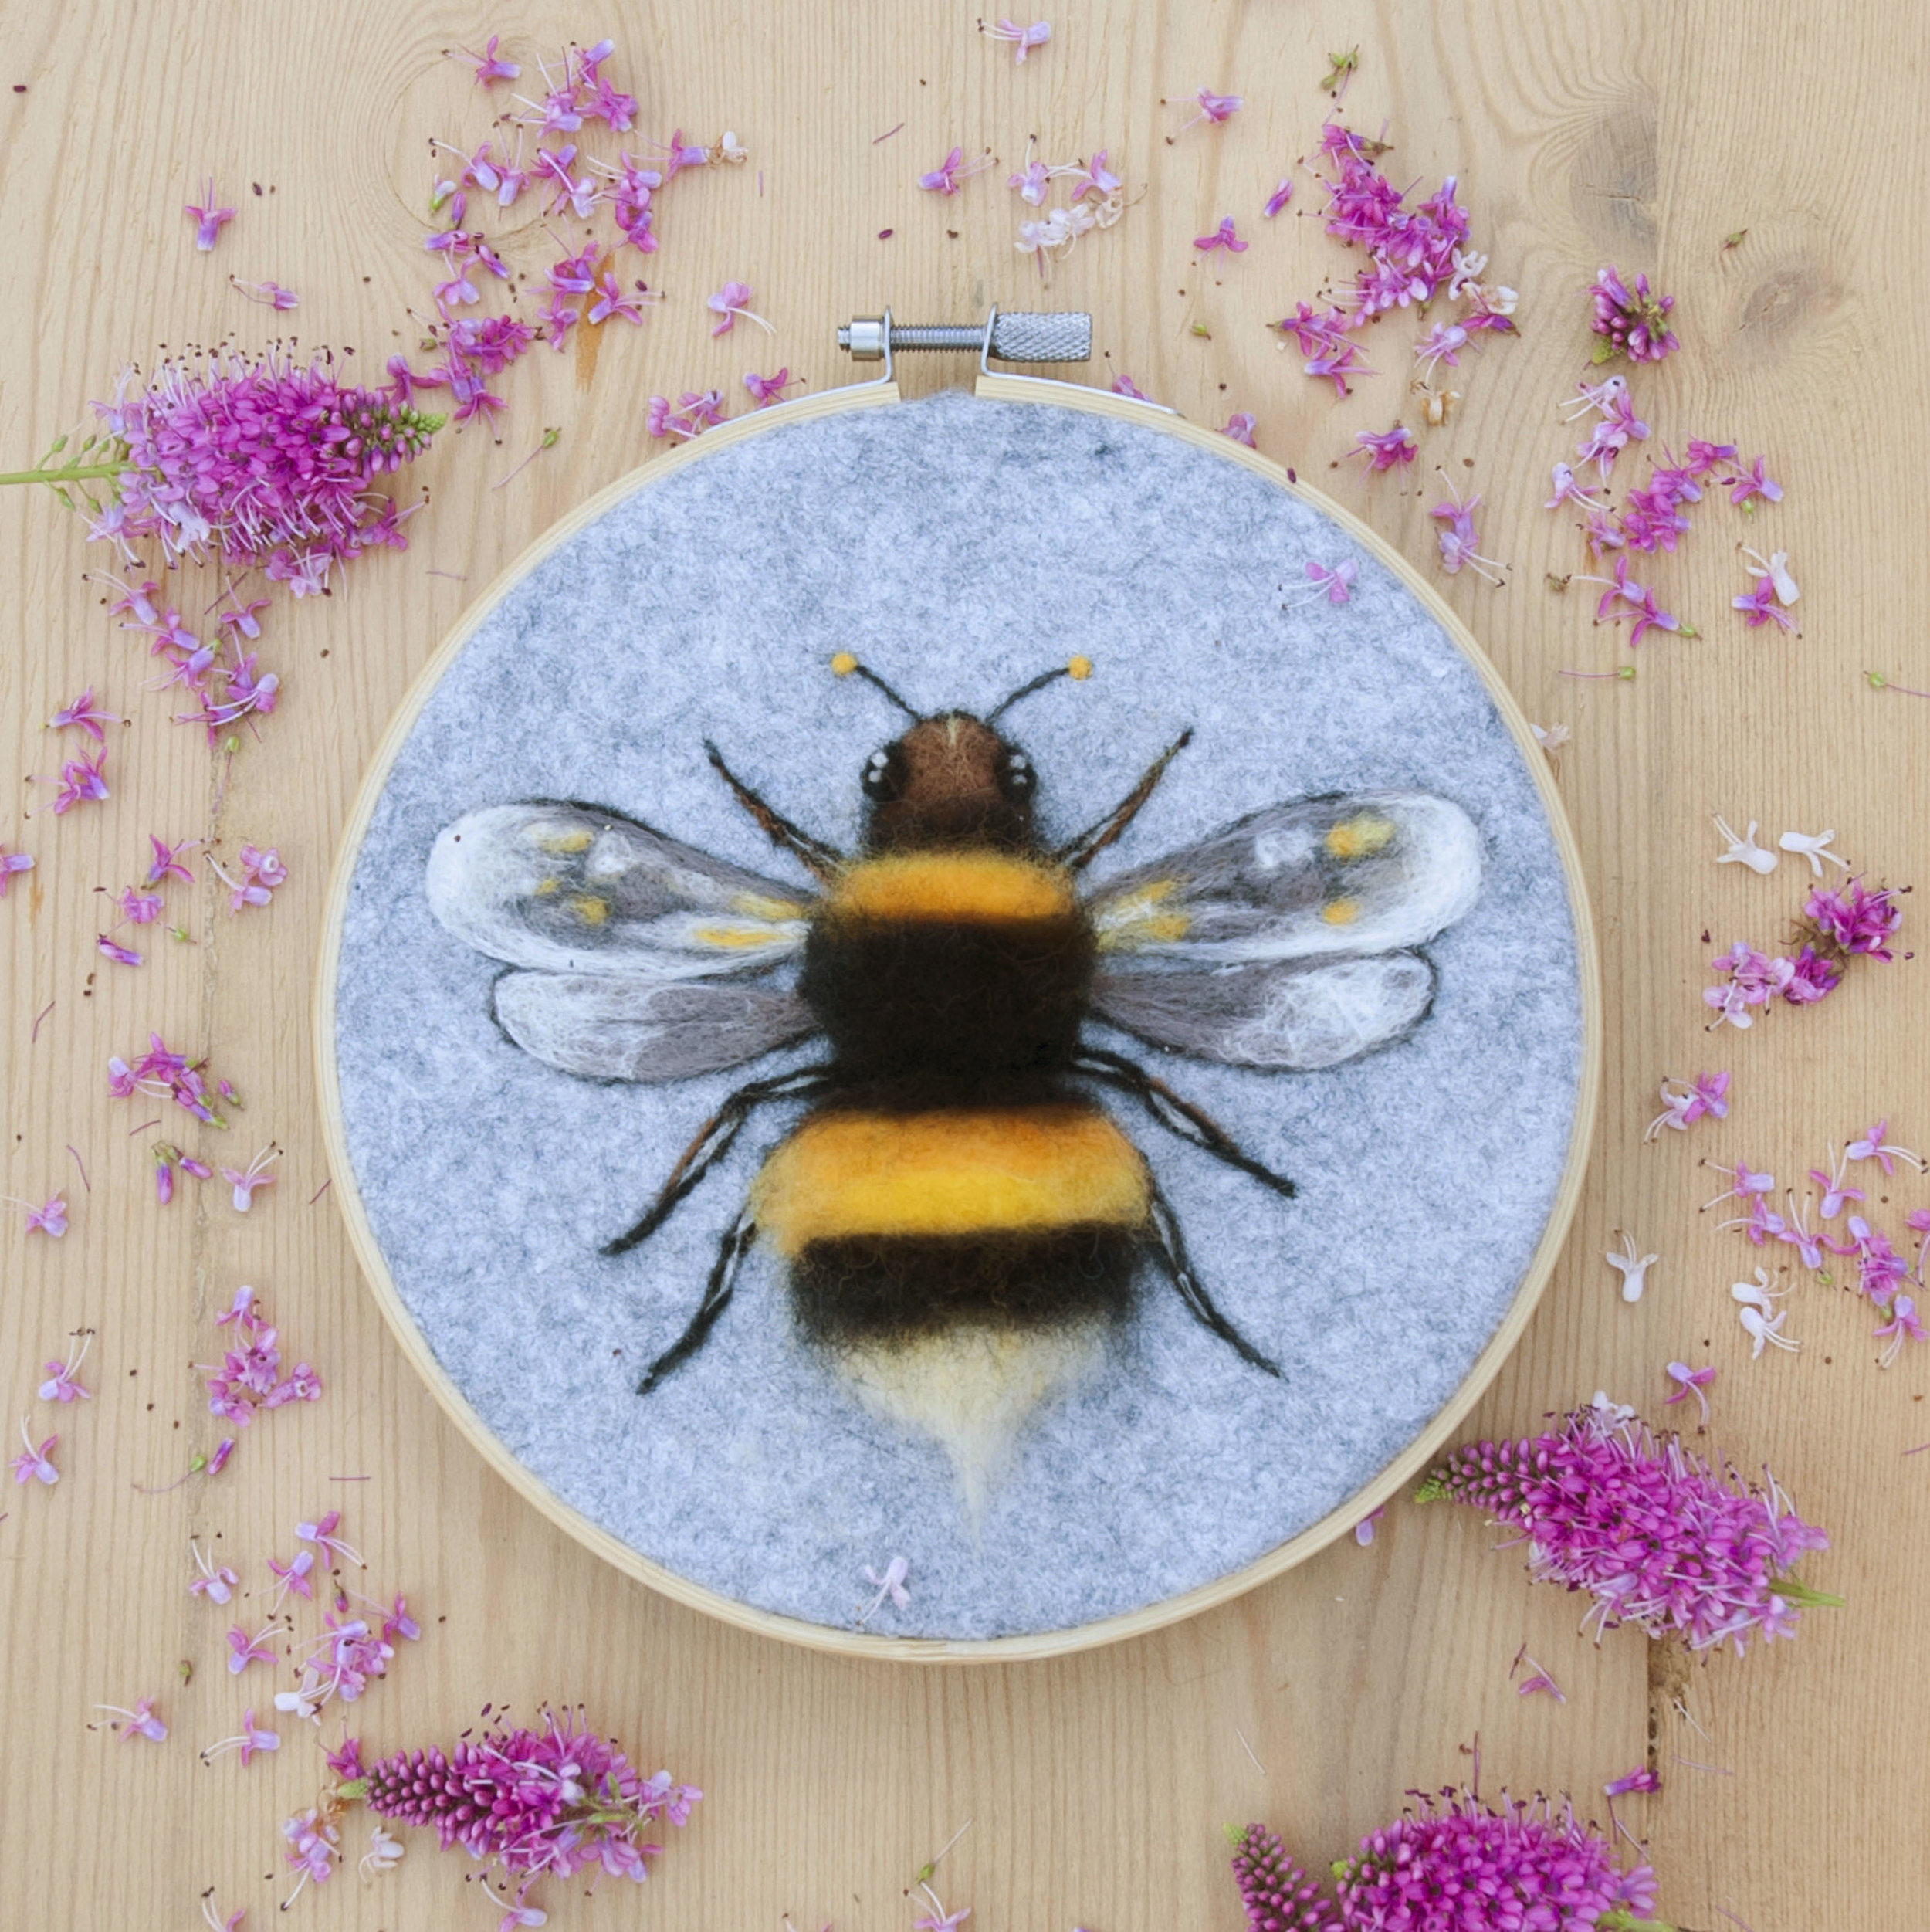 NEEDLEFELTED BUMBLE BEE 2.jpg